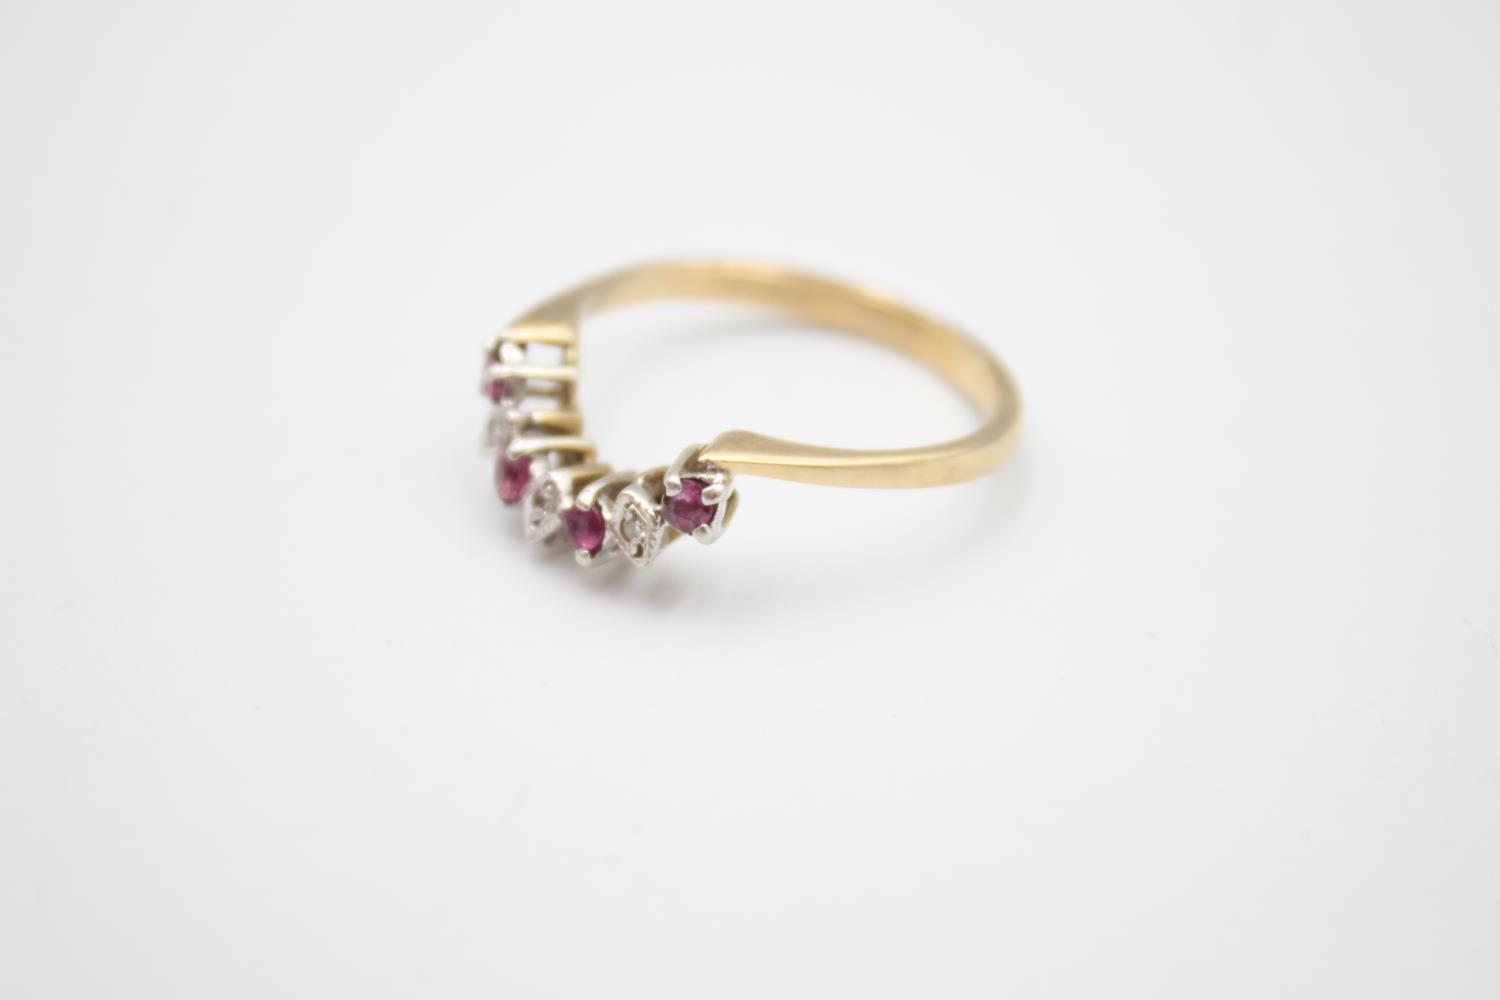 9ct gold diamond & ruby wed-fit chevron ring 2.7g Size S - Image 2 of 5